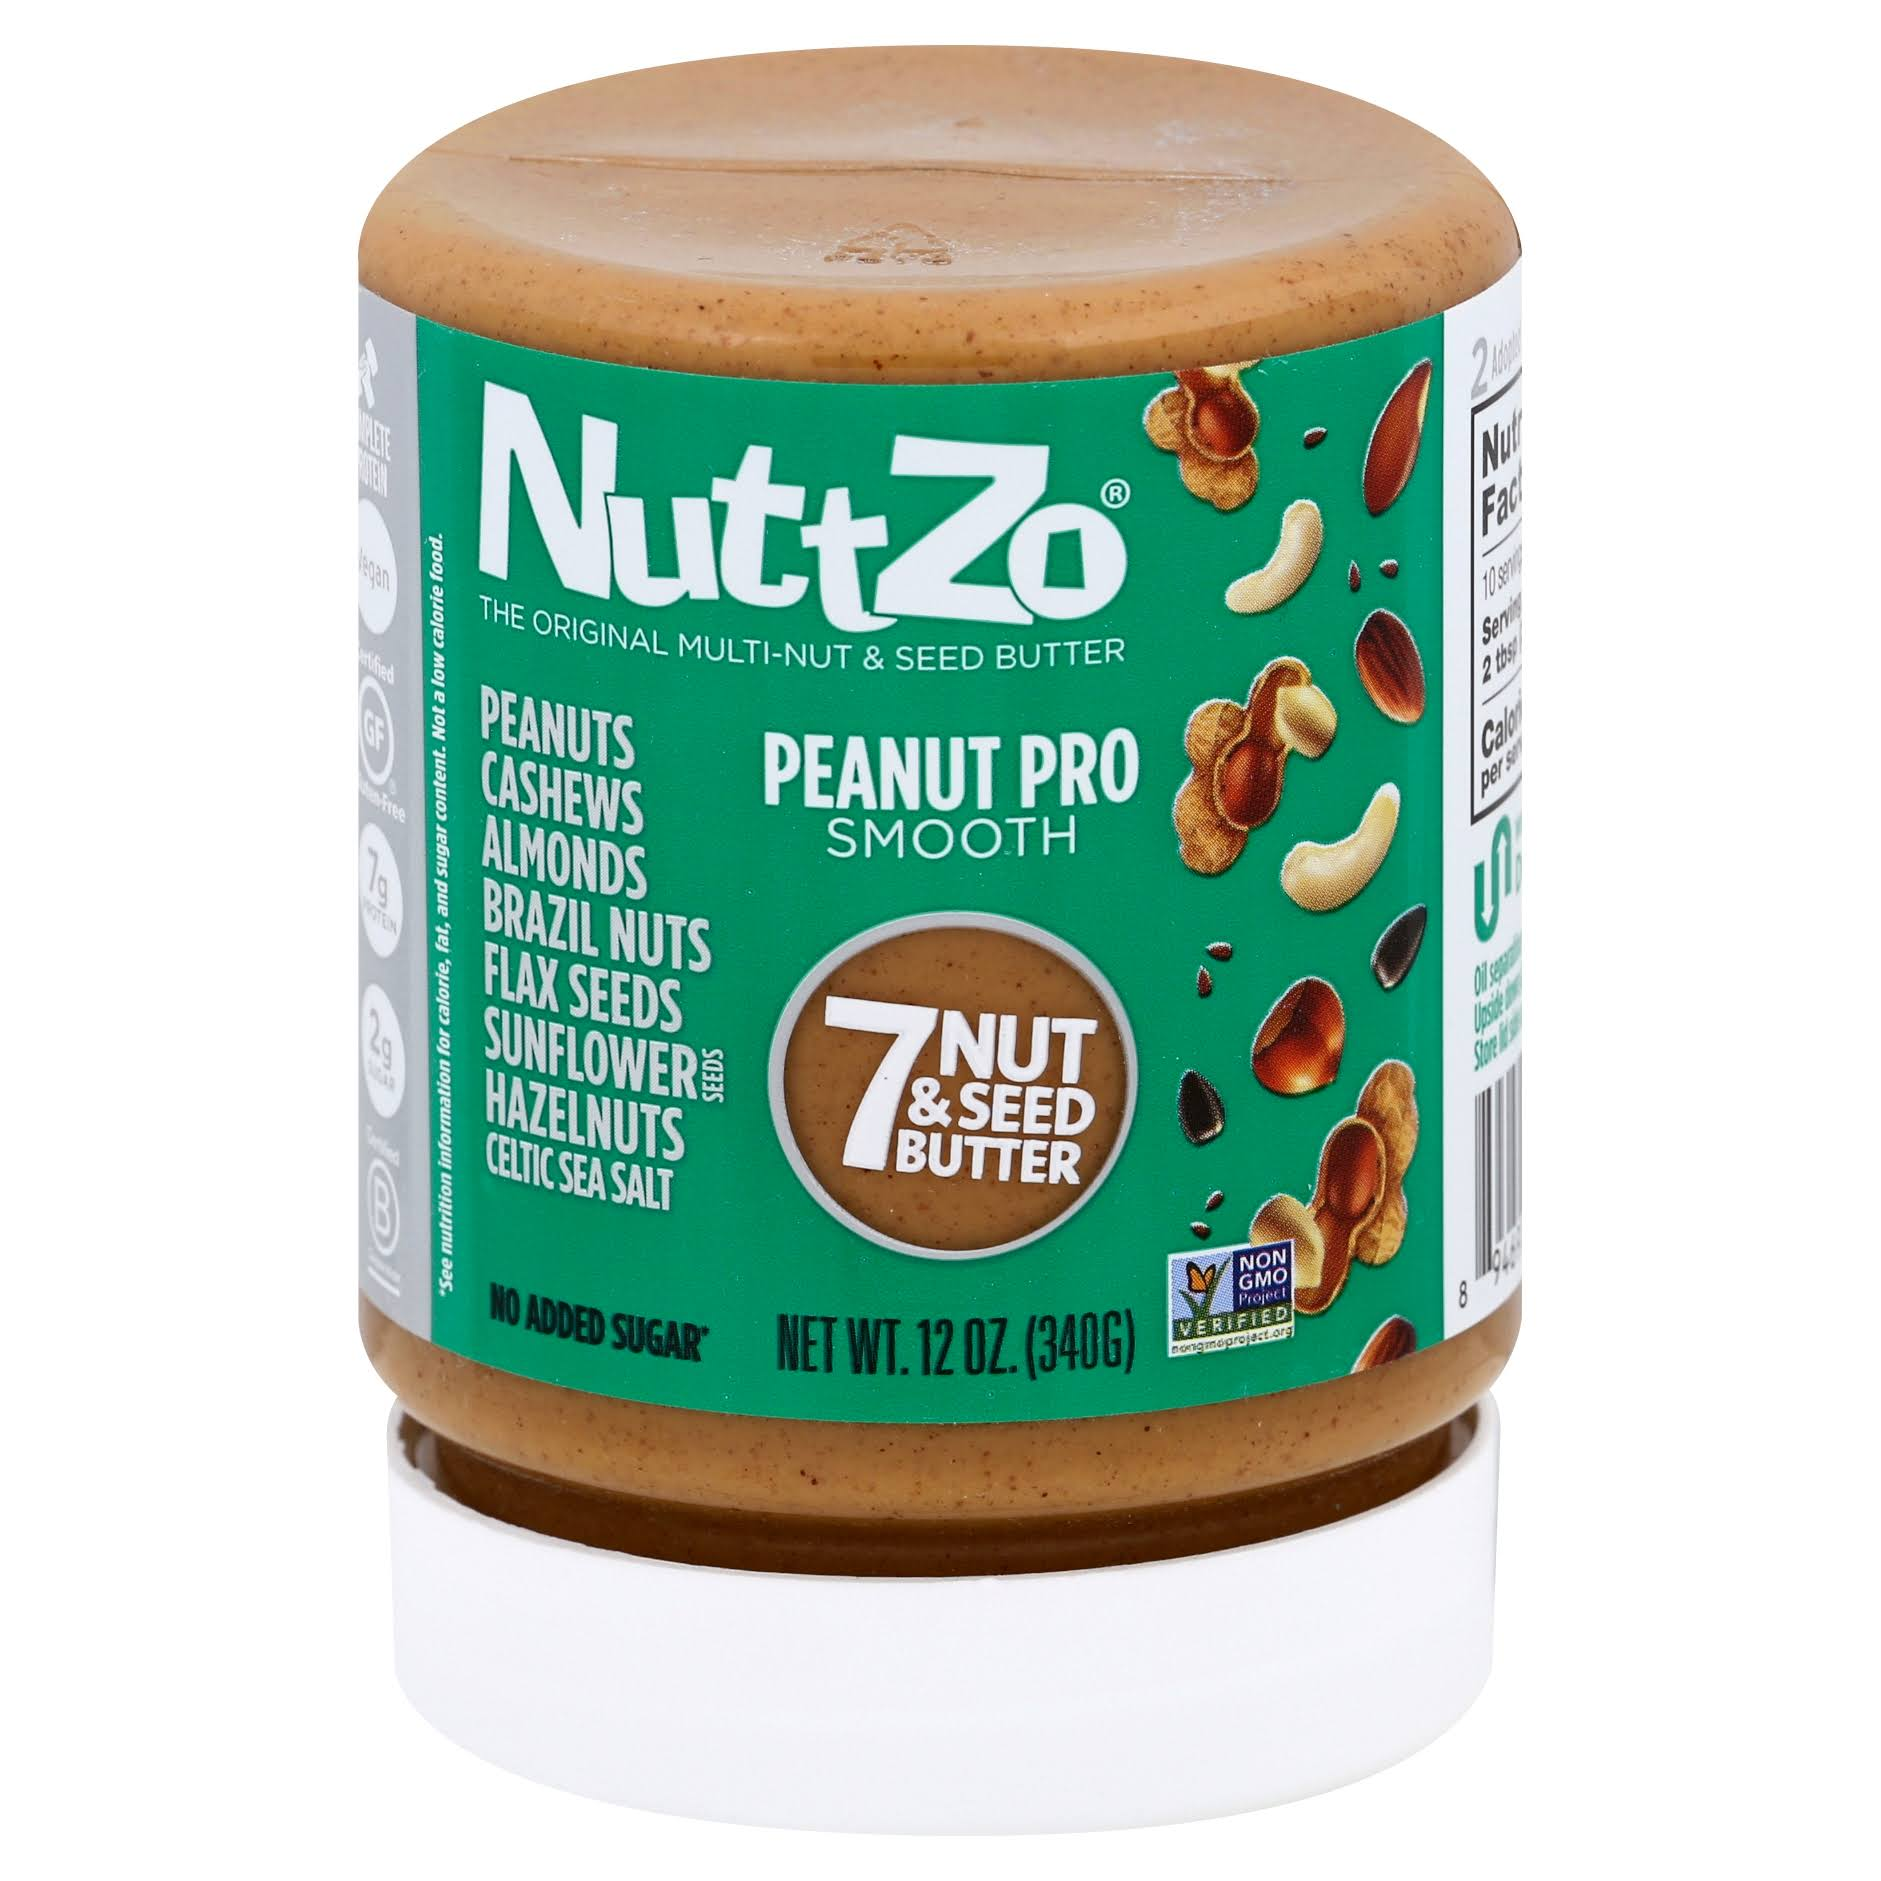 NuttZo 7 Nut & Seed Butter, Peanut Pro, Smooth - 12 oz